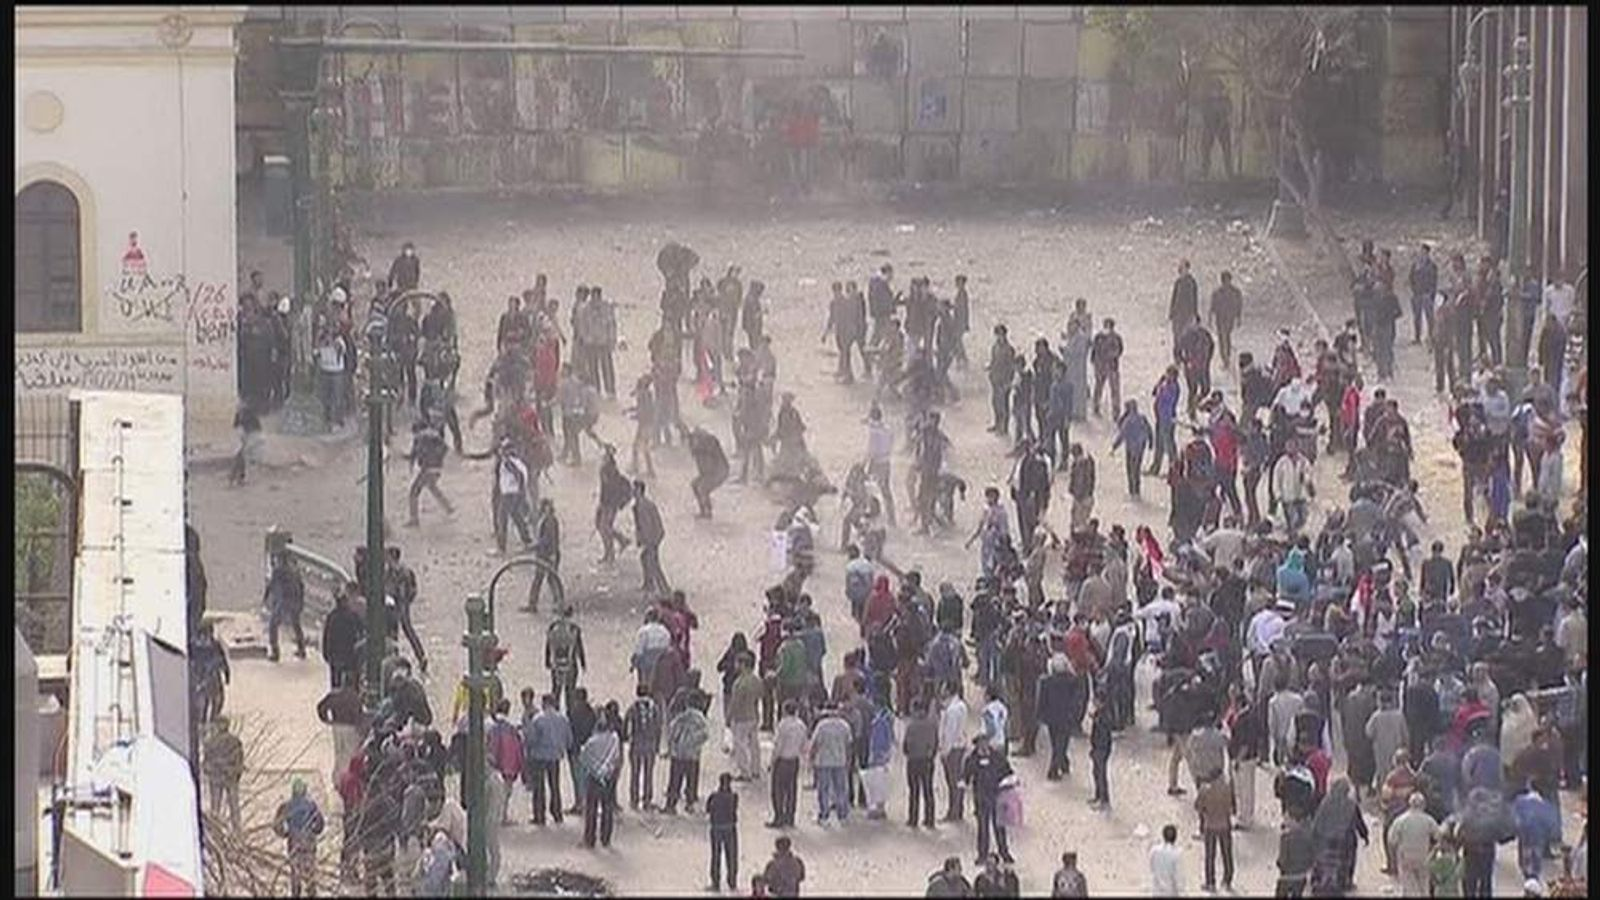 Protests are rekindled in Tahrir Square